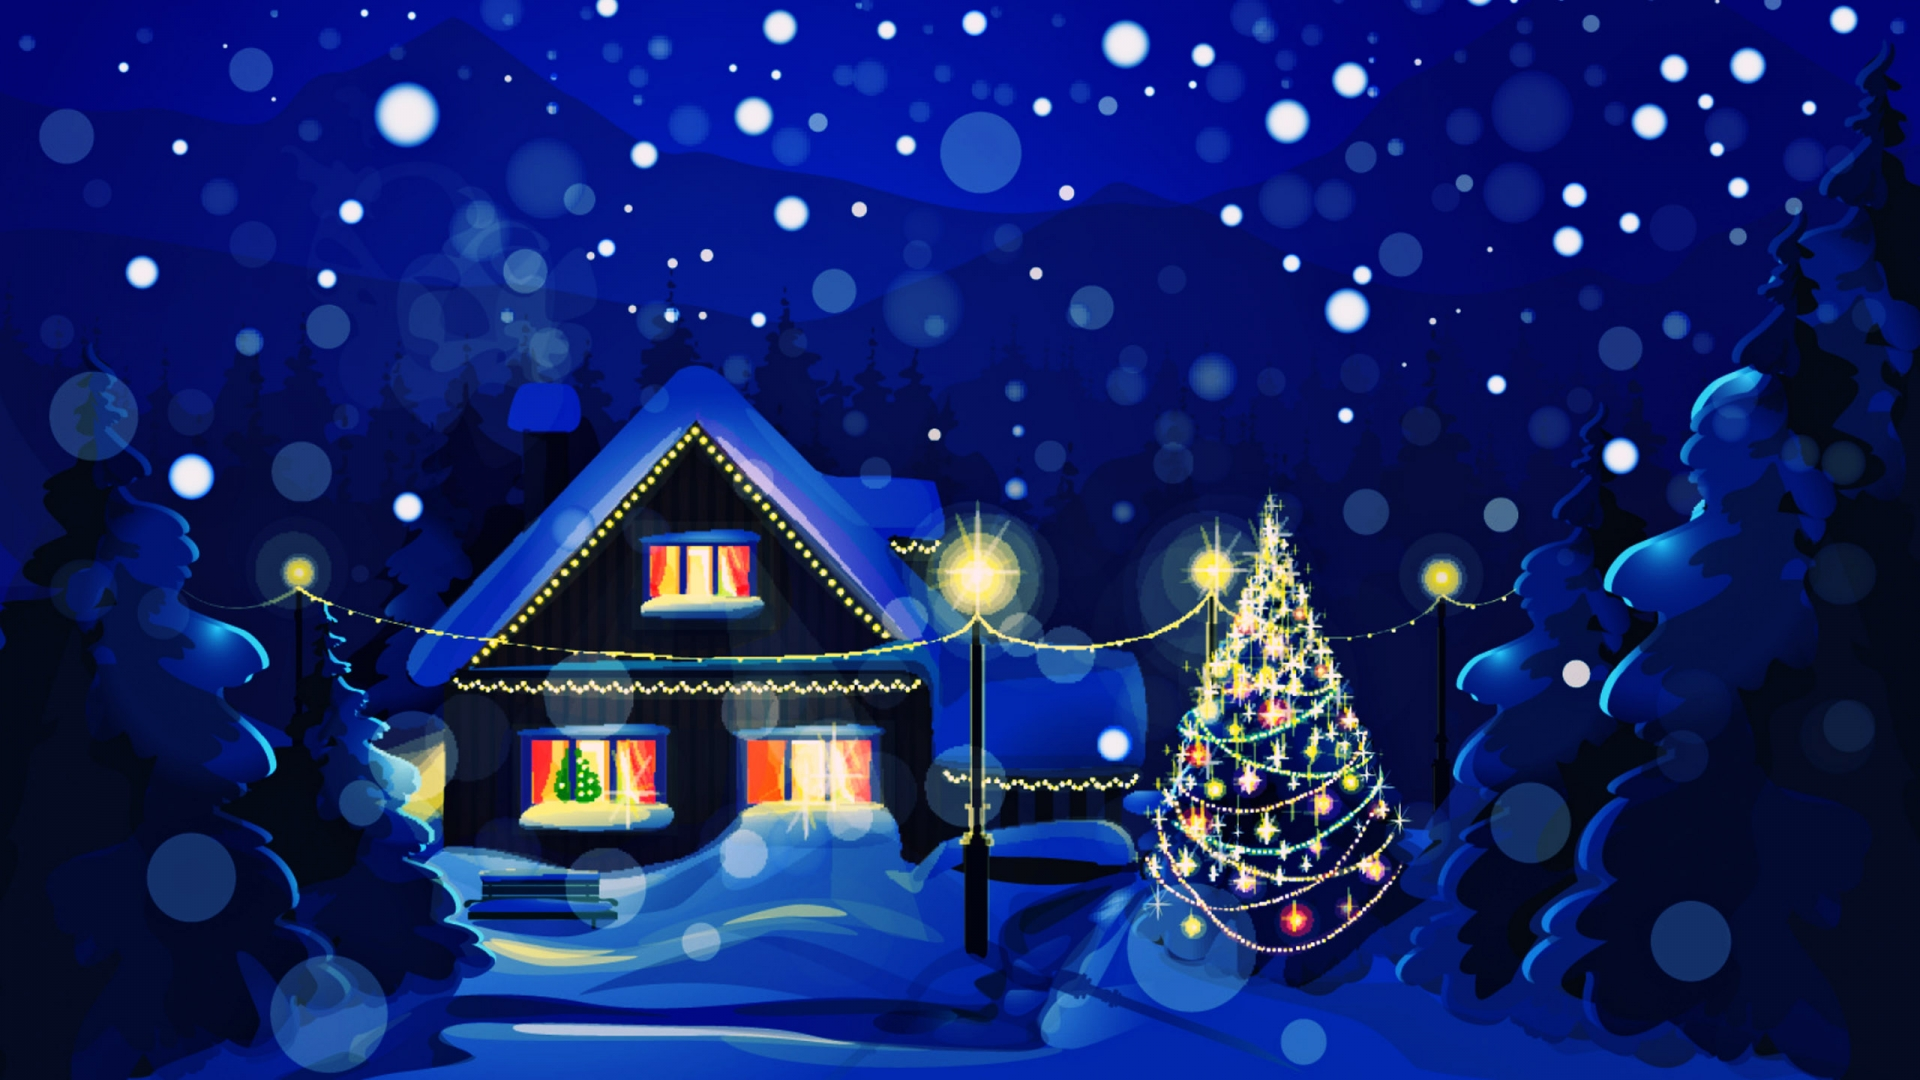 Christmas Winter 1080p Hd Wallpaper Hd Wallpapers 1920x1080